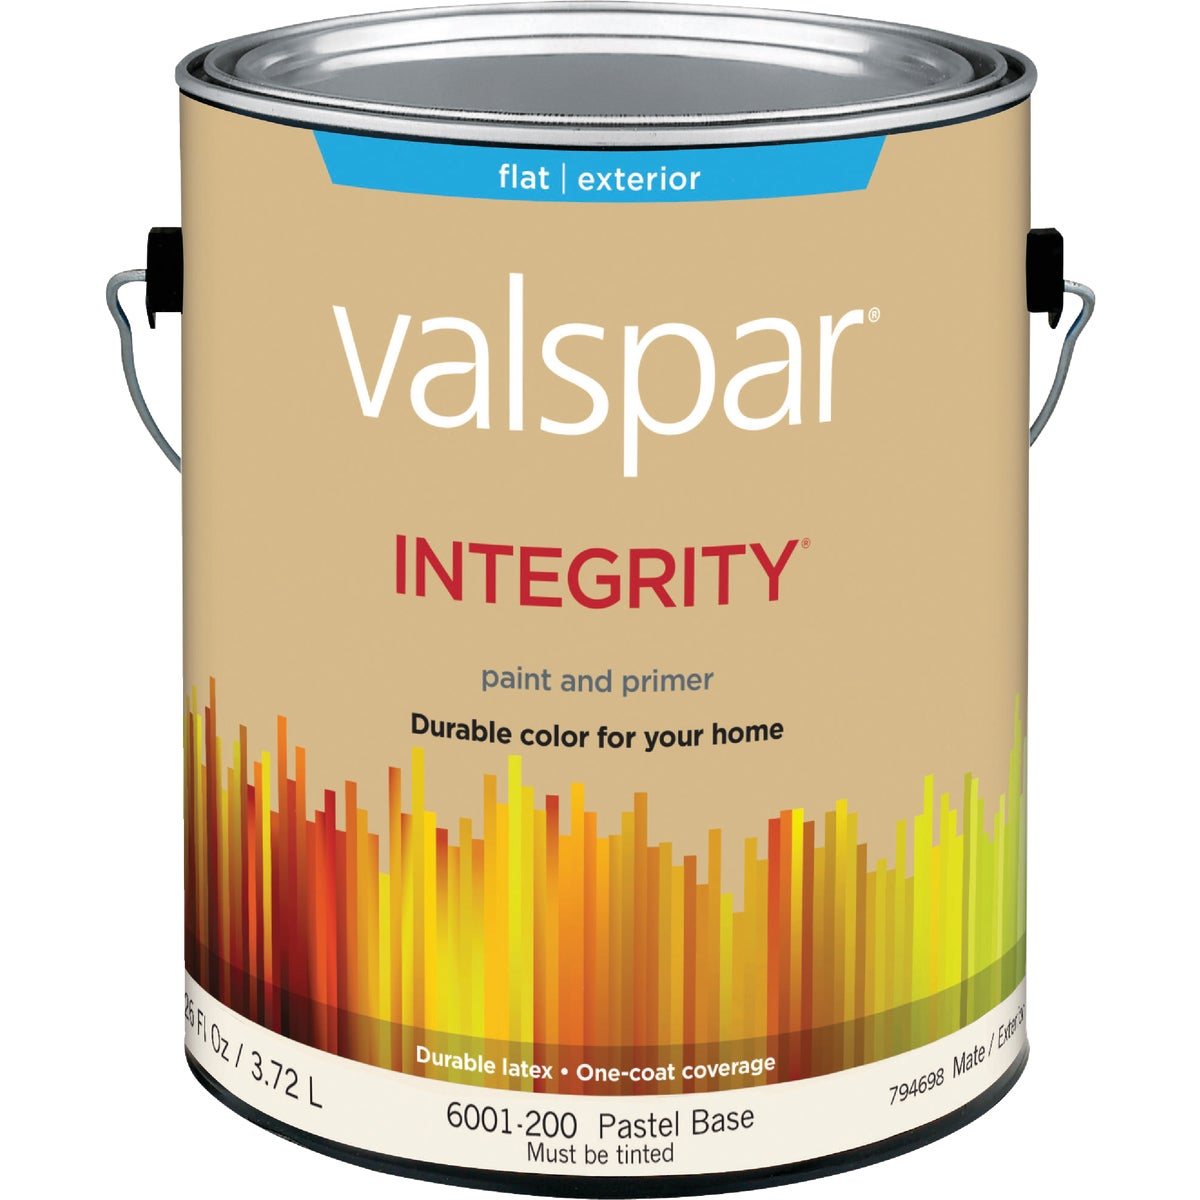 EXT FLAT PASTEL BS PAINT - 004.6001200.007 by Valspar Corp